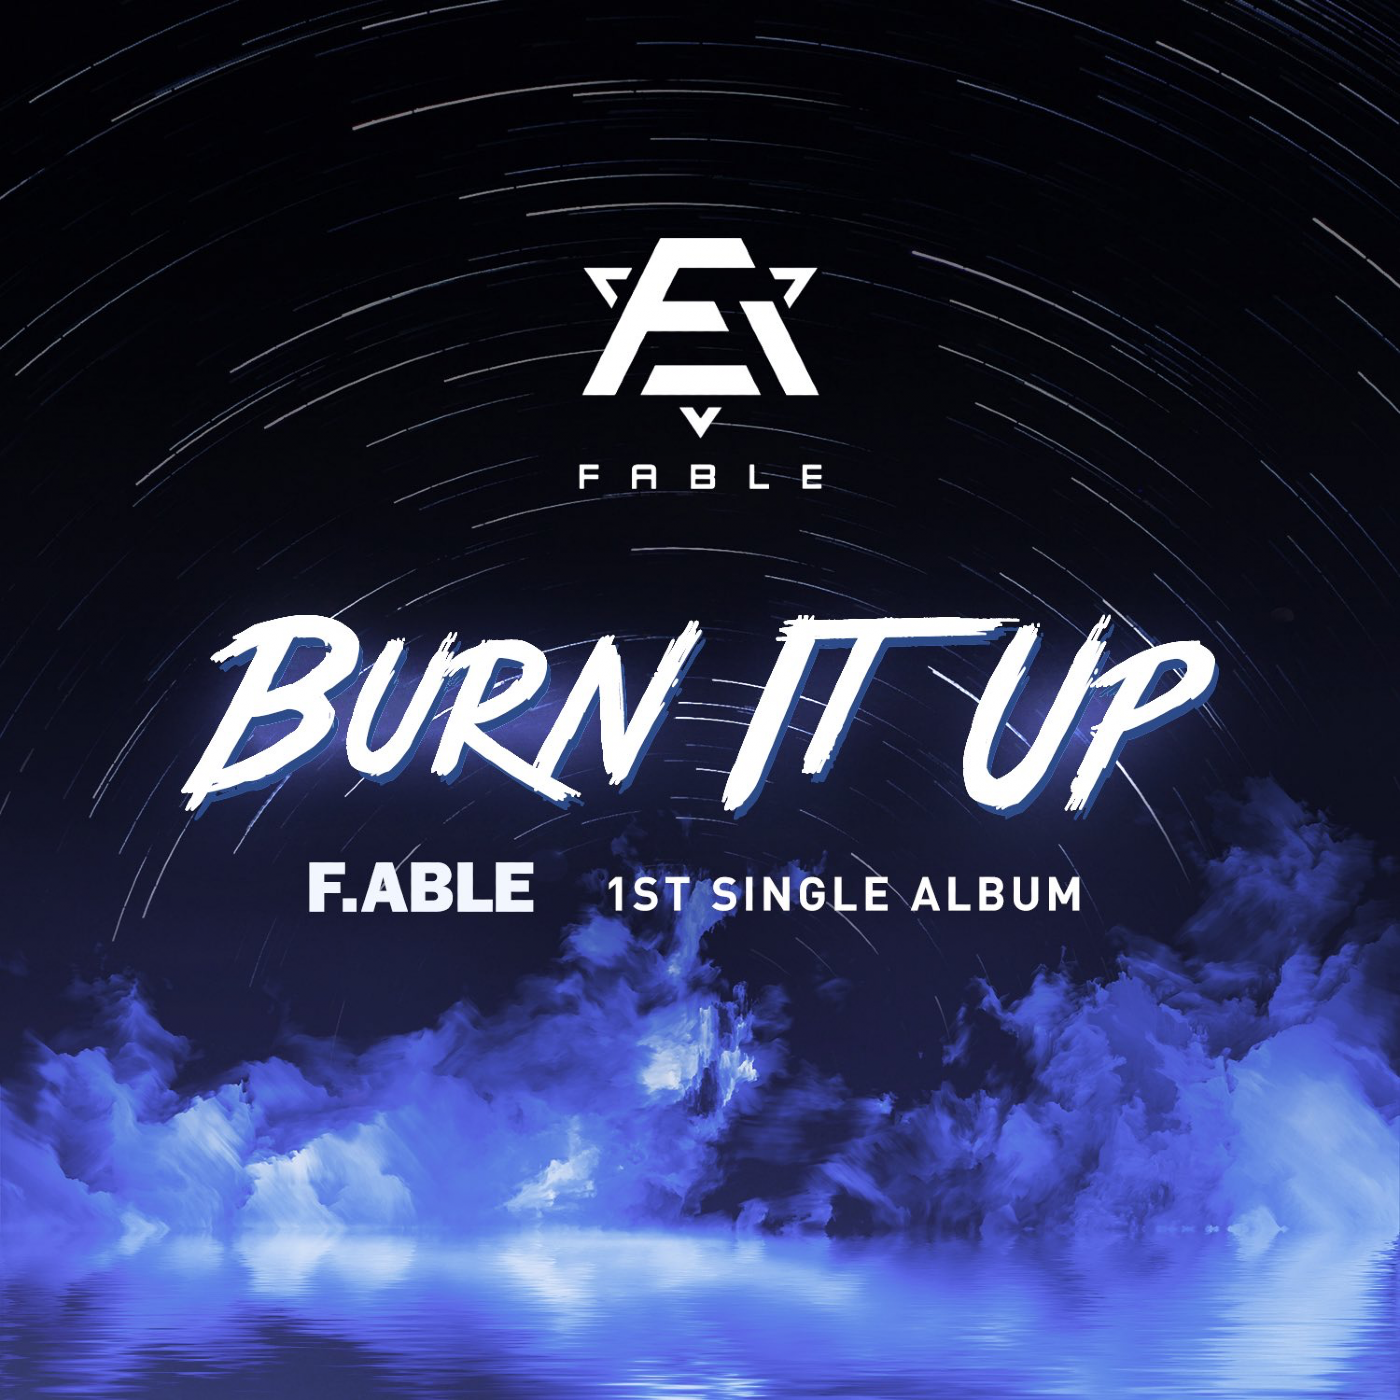 Burn It Up (F.able)